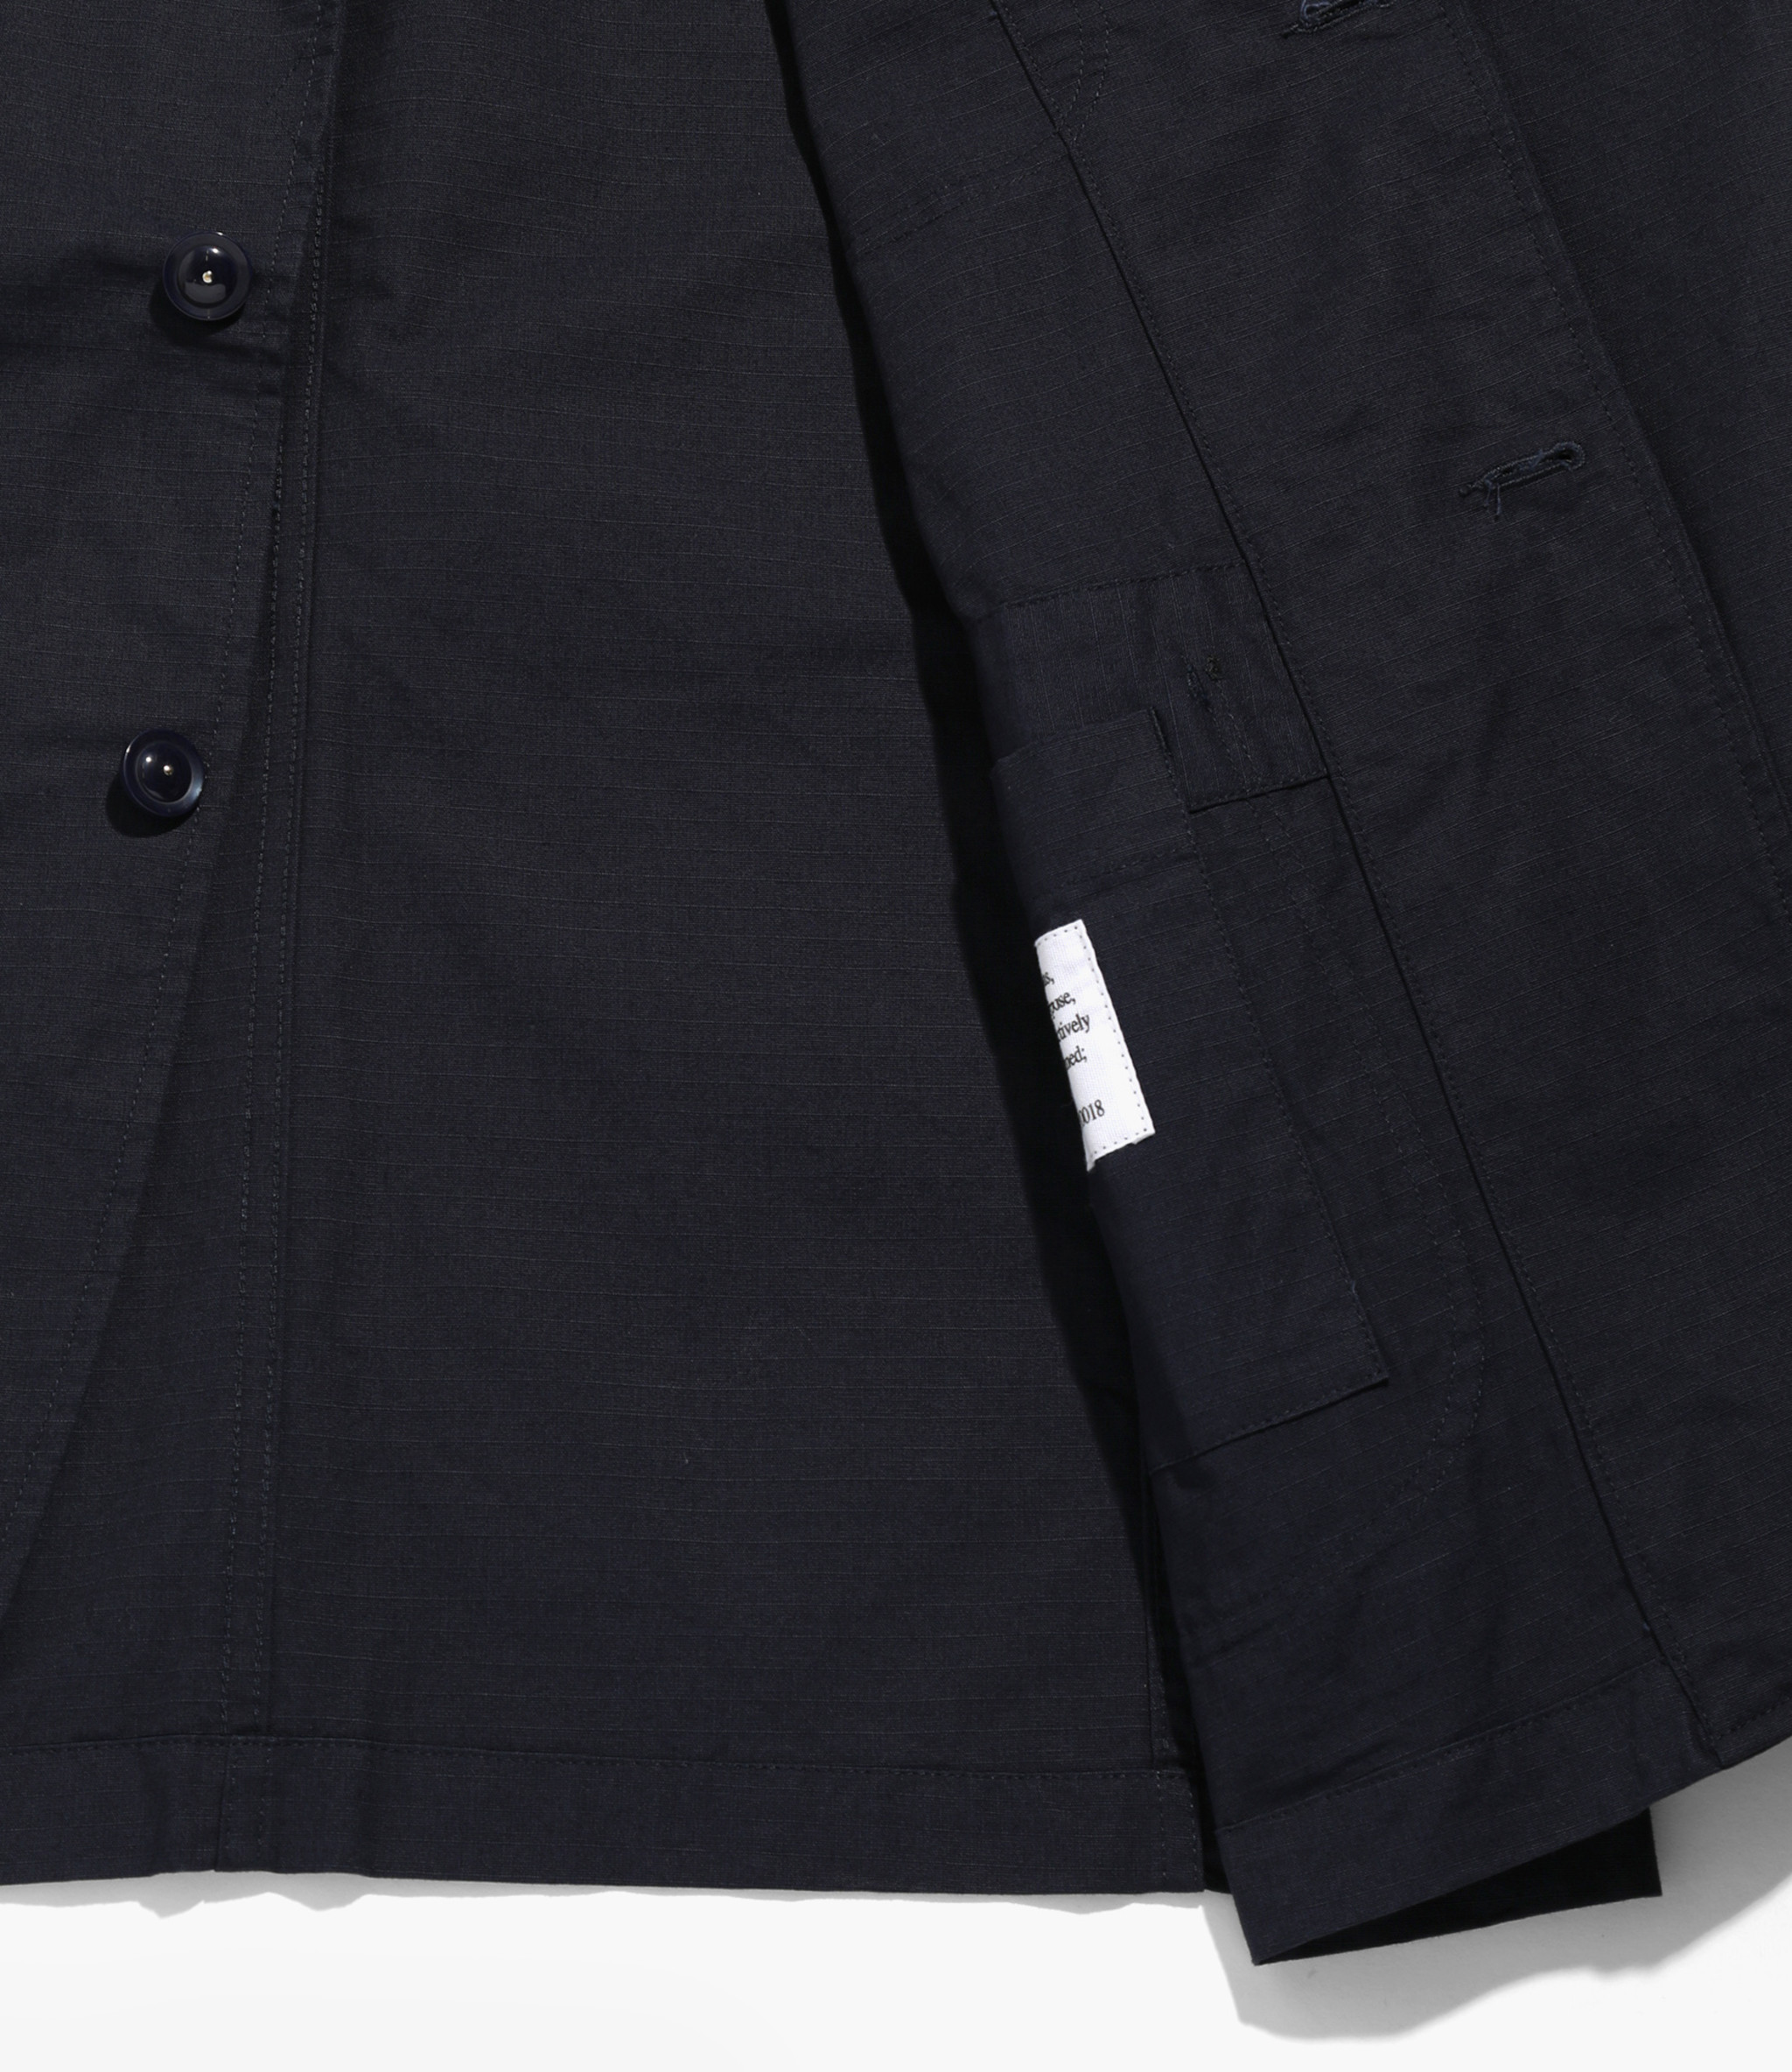 Engineered Garments Bedford Jacket - Dk.Navy Cotton Ripstop